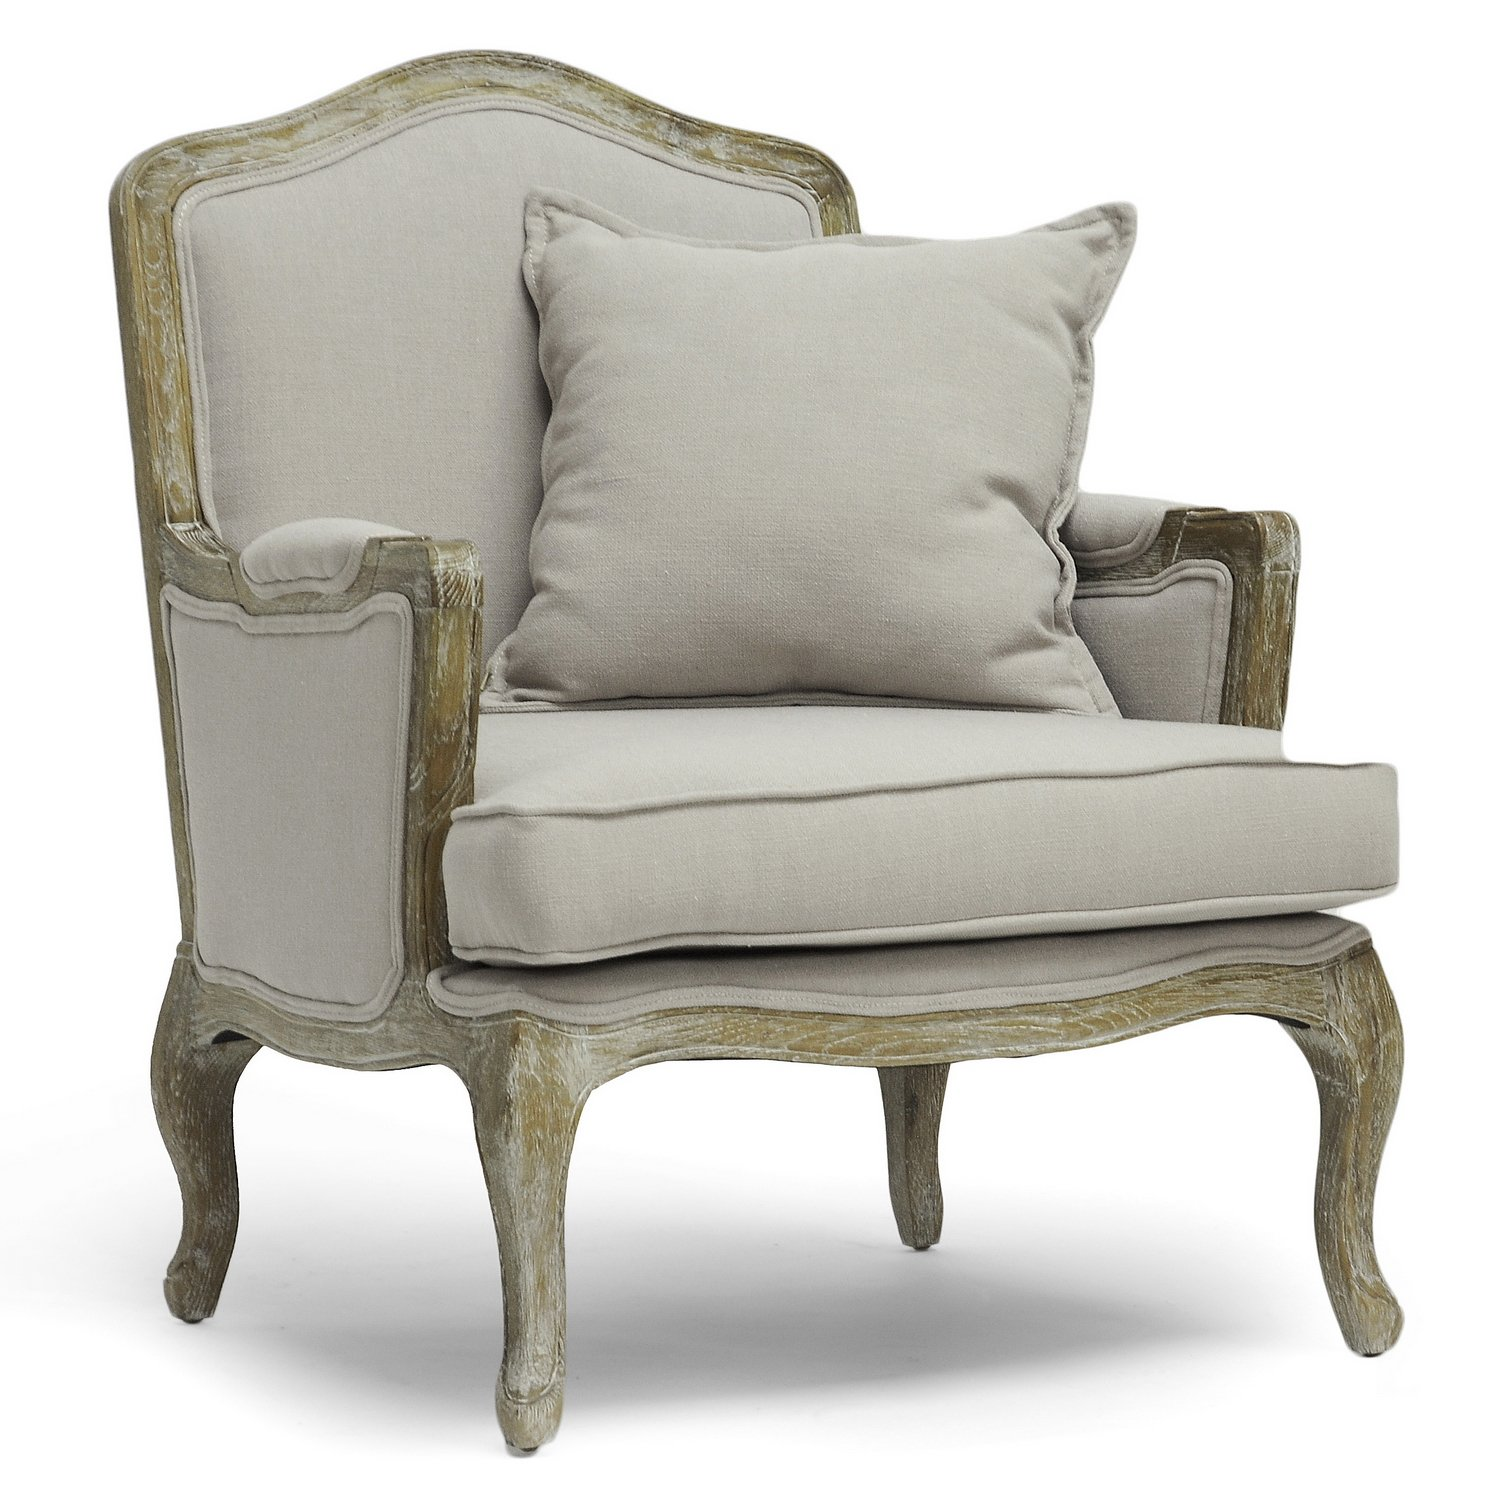 Merveilleux Amazon.com   Baxton Studio Constanza Classic Antiqued French Accent Chair    Chairs